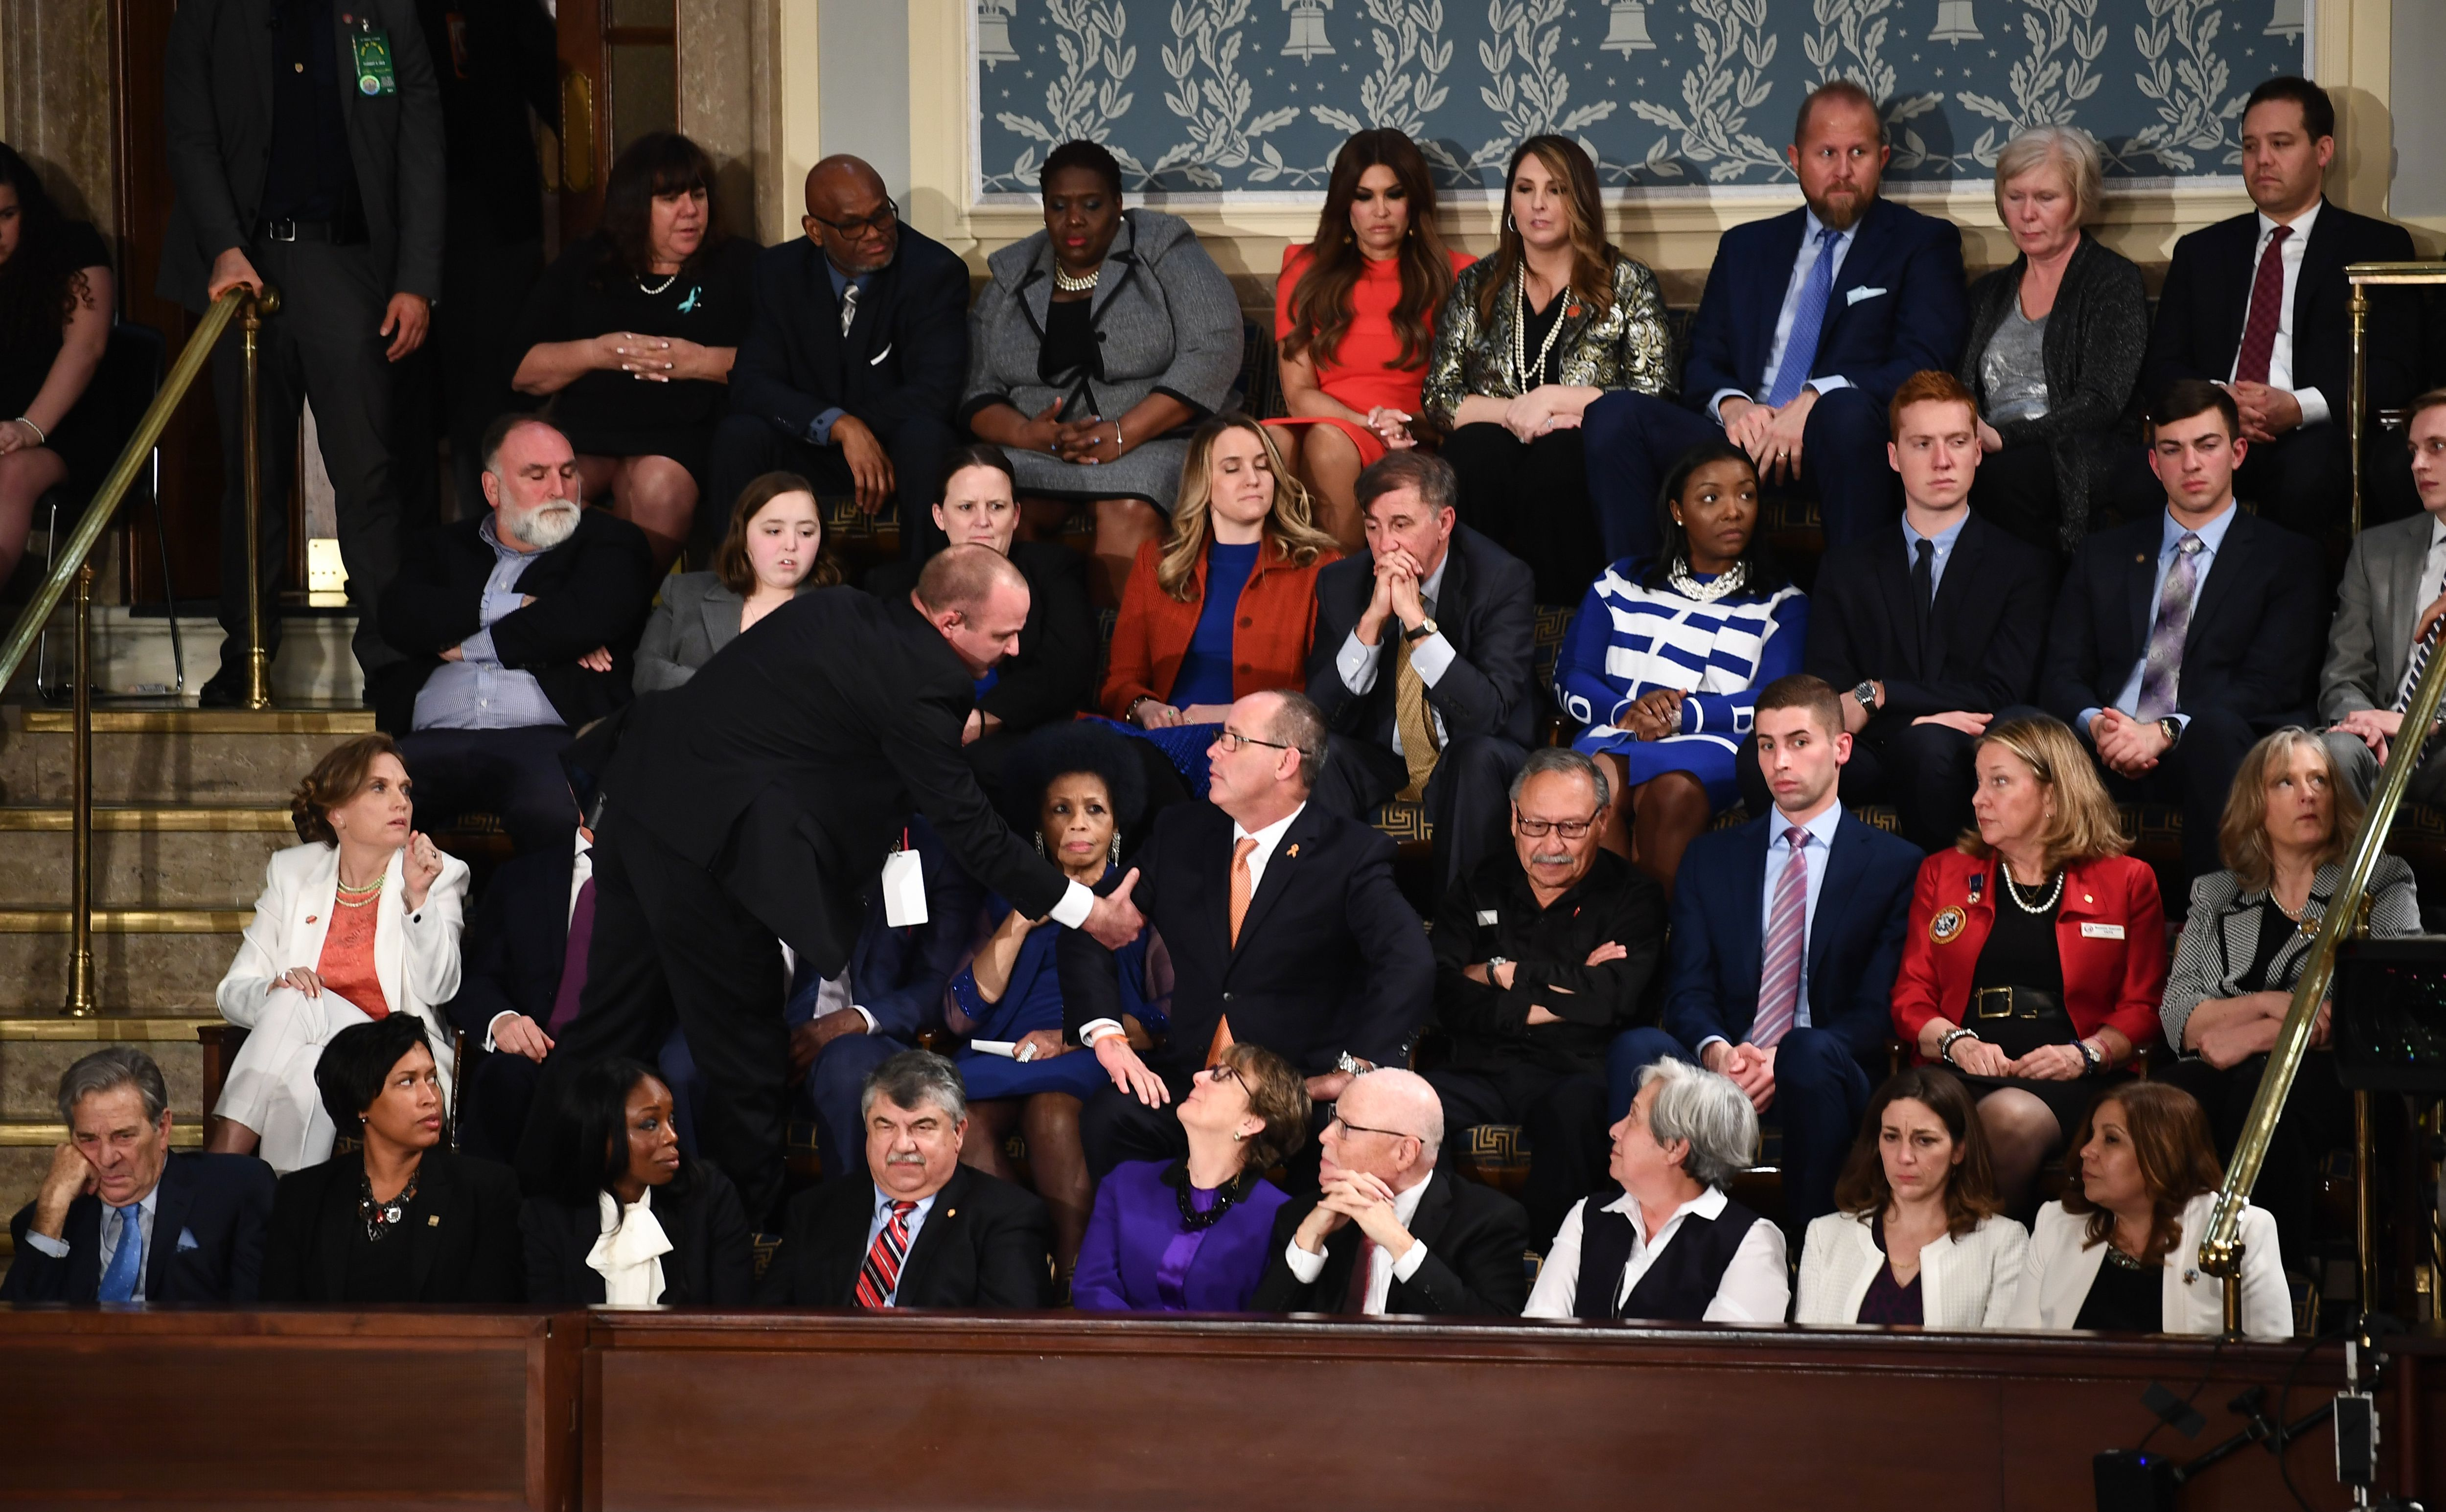 Fred Guttenberg is removed by security after yelling as President Trump delivered the State of the Union address at the US Capitol in Washington, D.C on Feb. 4, 2020.